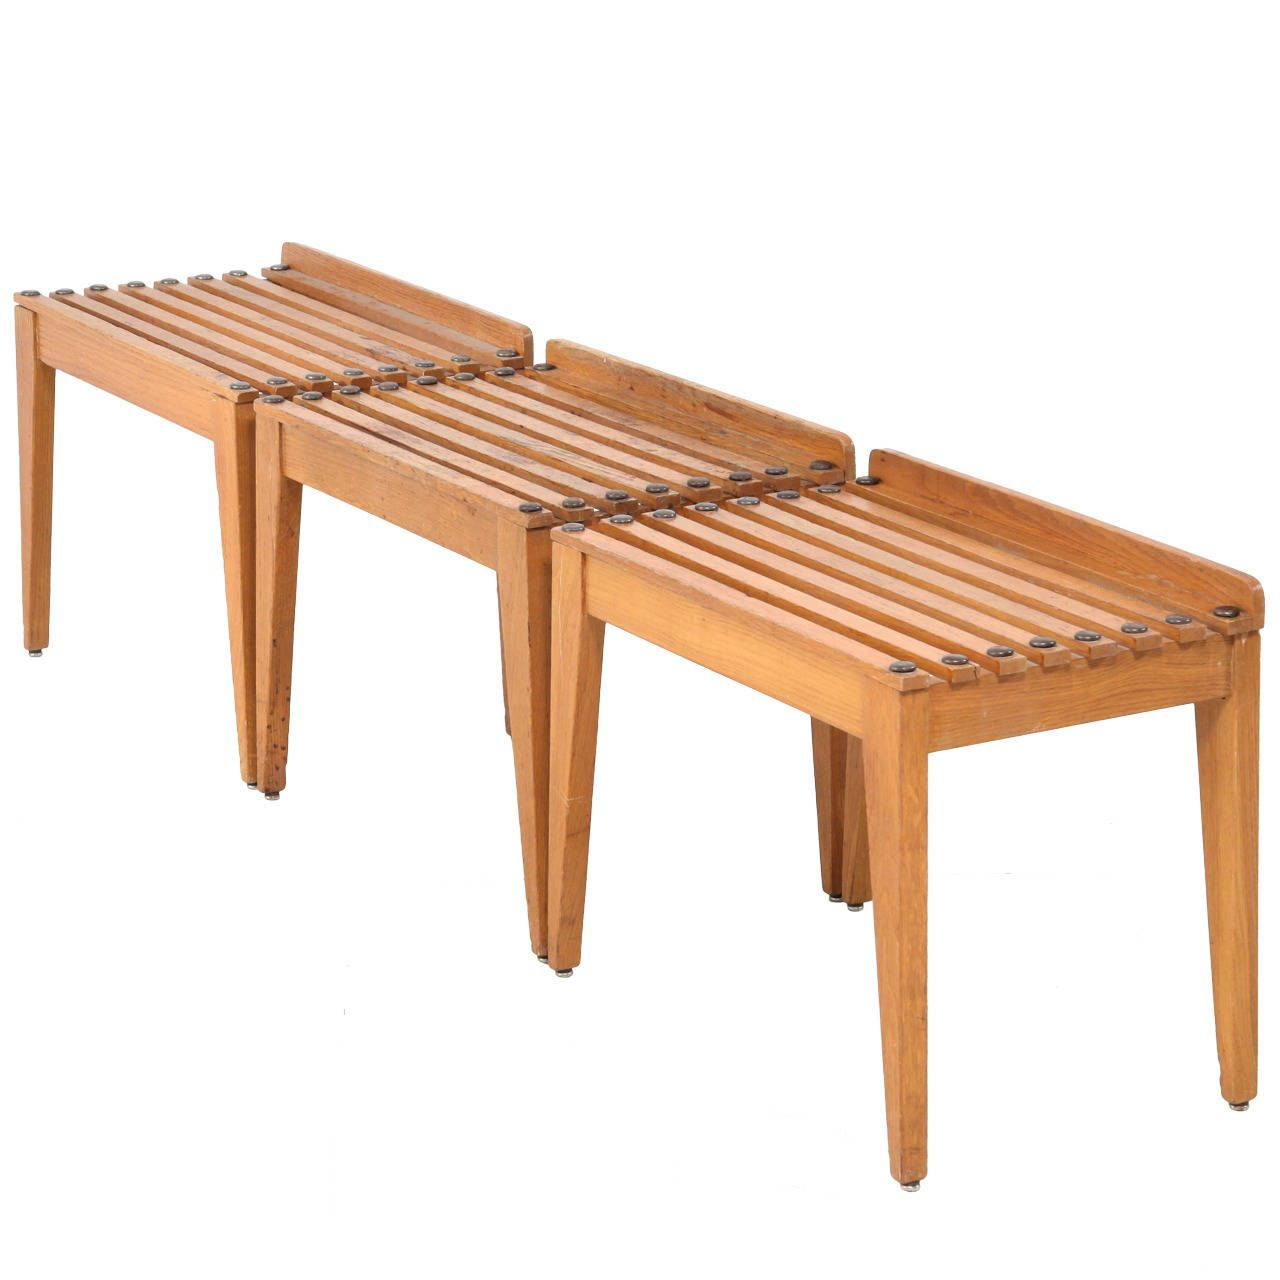 Set Of Three Porte Bagage Benches From A Unique Collection Of